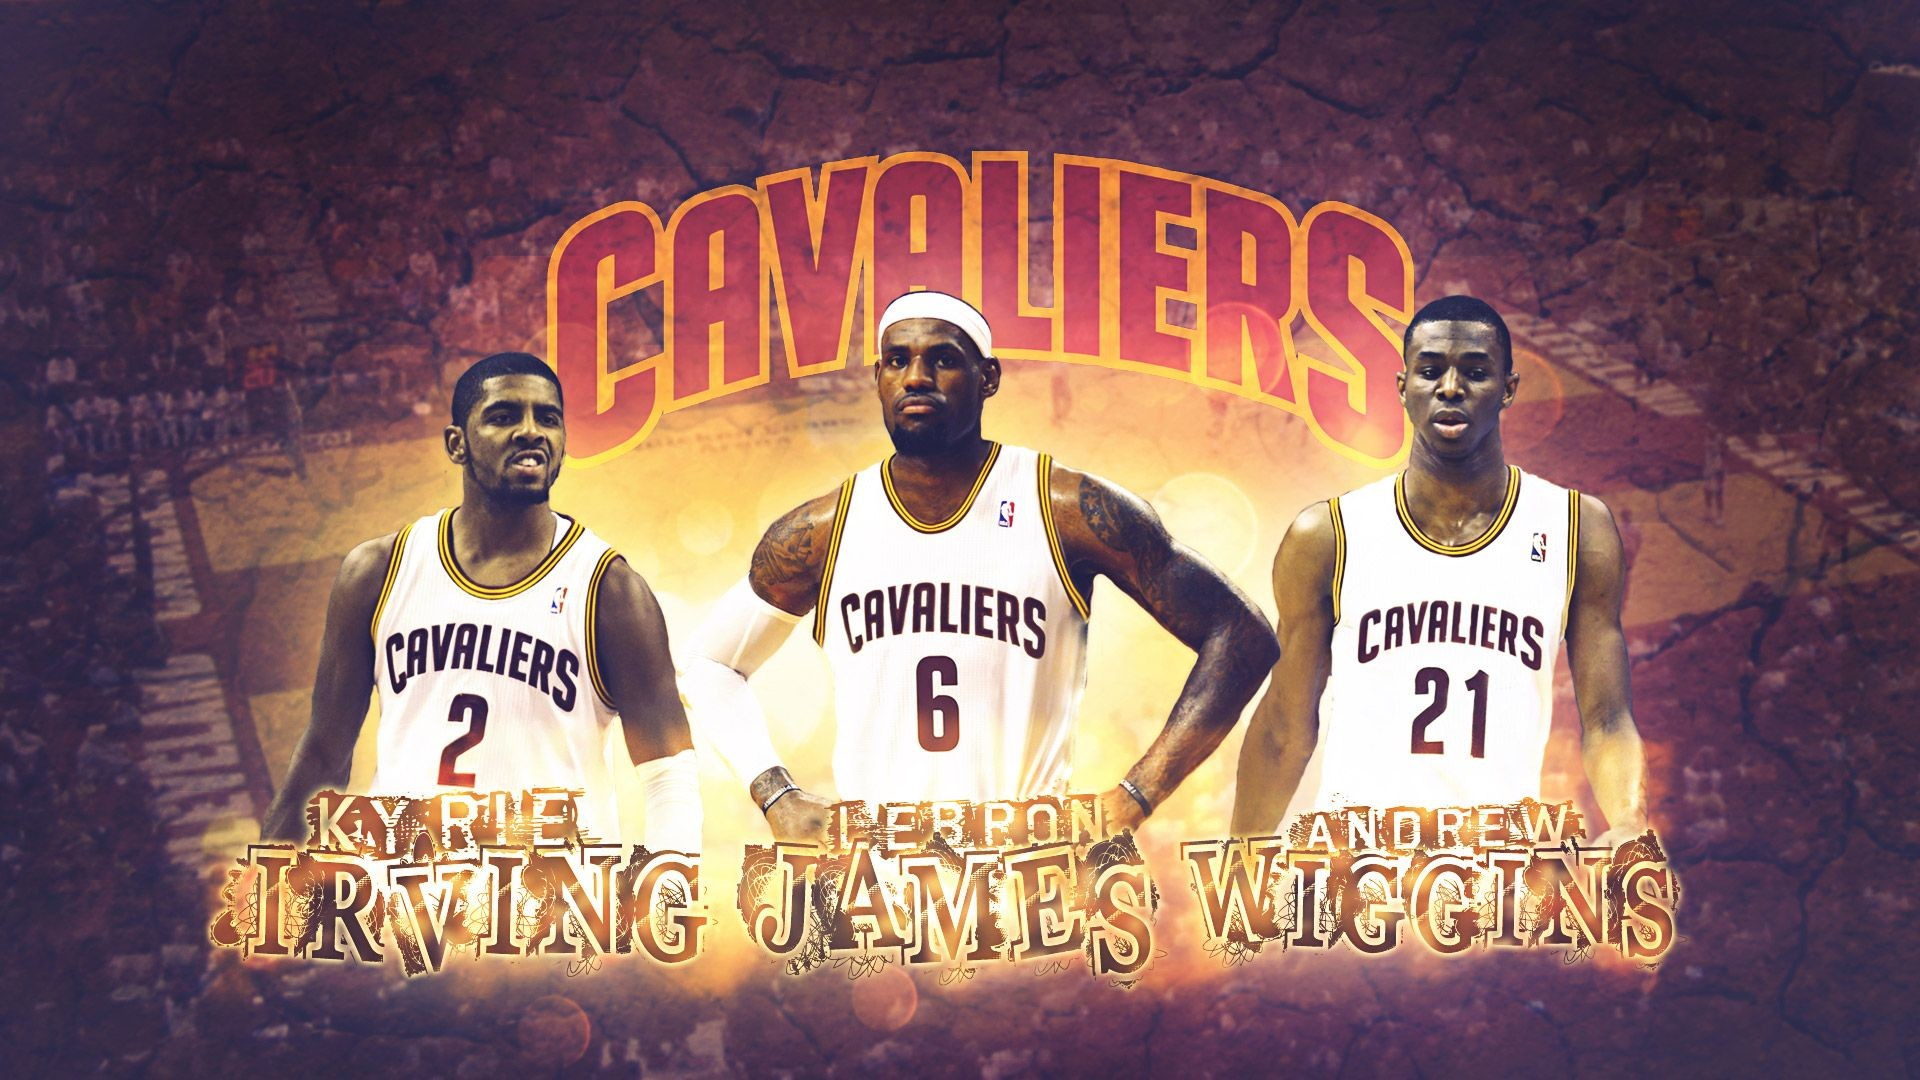 1920x1080 Free Cleveland Cavaliers Wallpapers HD.